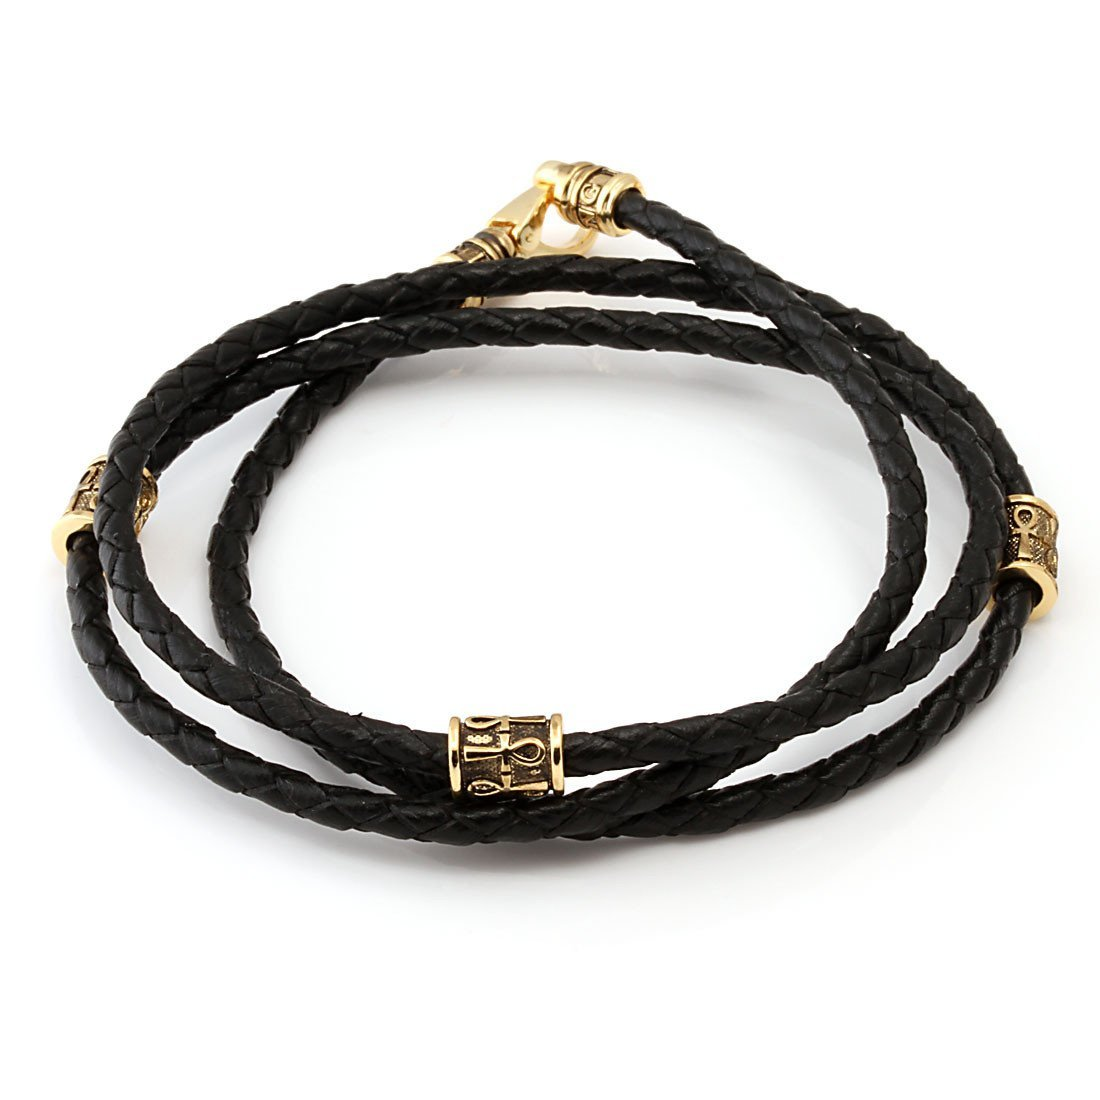 Bracelets - 14K Gold Apep and Ankh Leather Bracelet -   jetcube